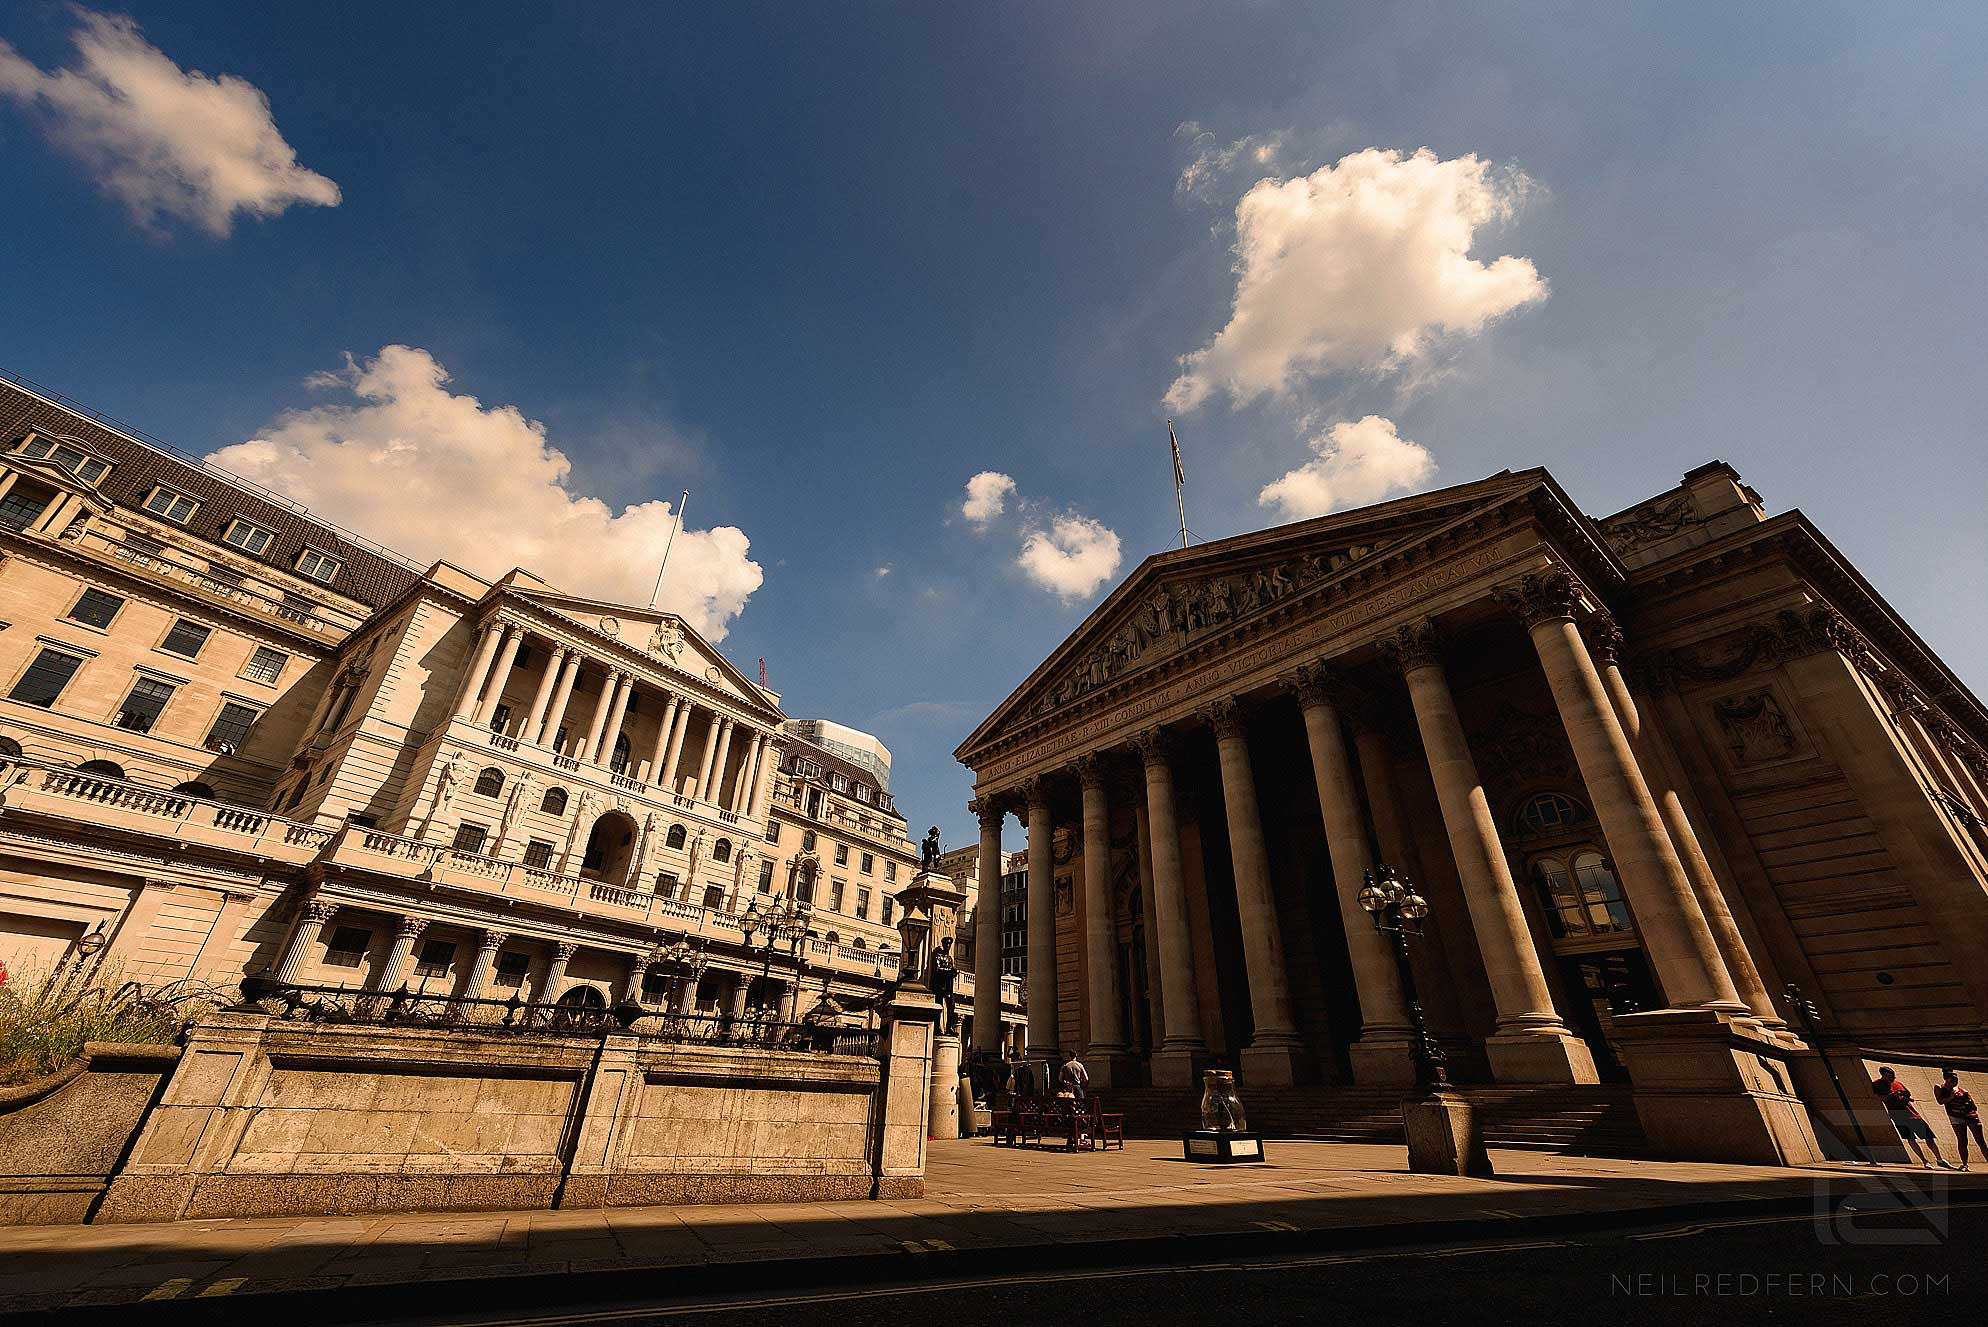 exterior photograph of The Royal Exchange London